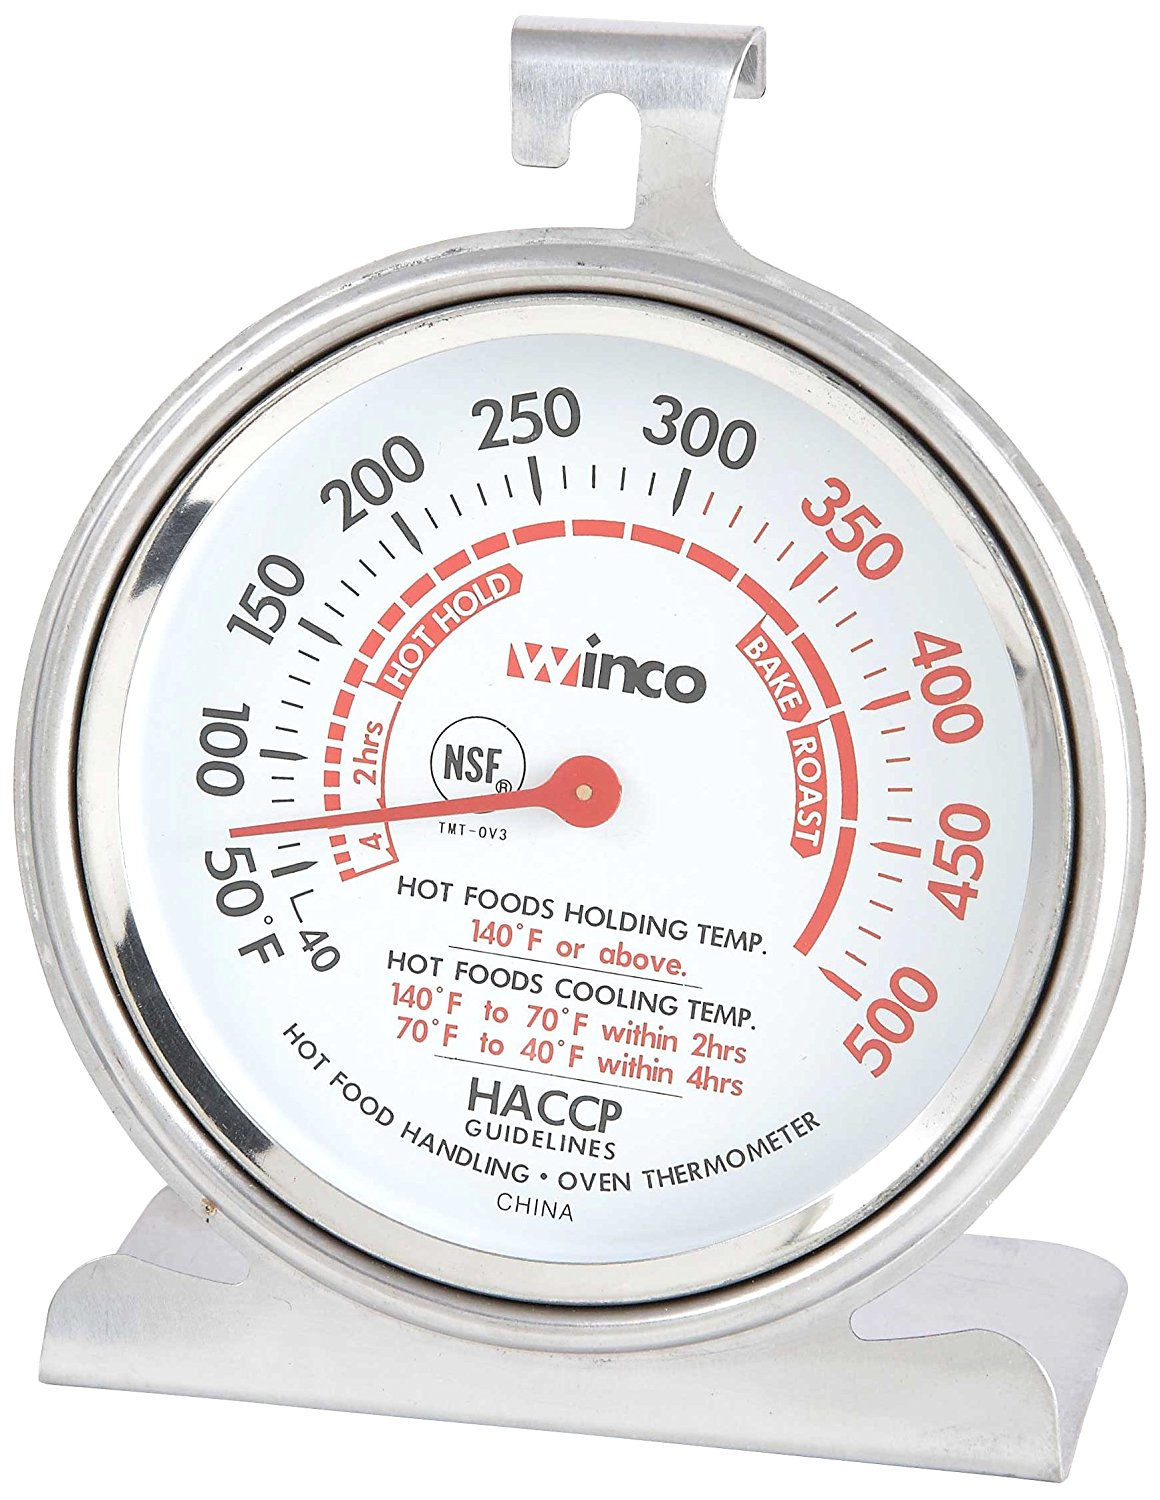 3-Inch Dial Oven Thermometer with Hook and Panel Base, Oven thermometer By Winco by